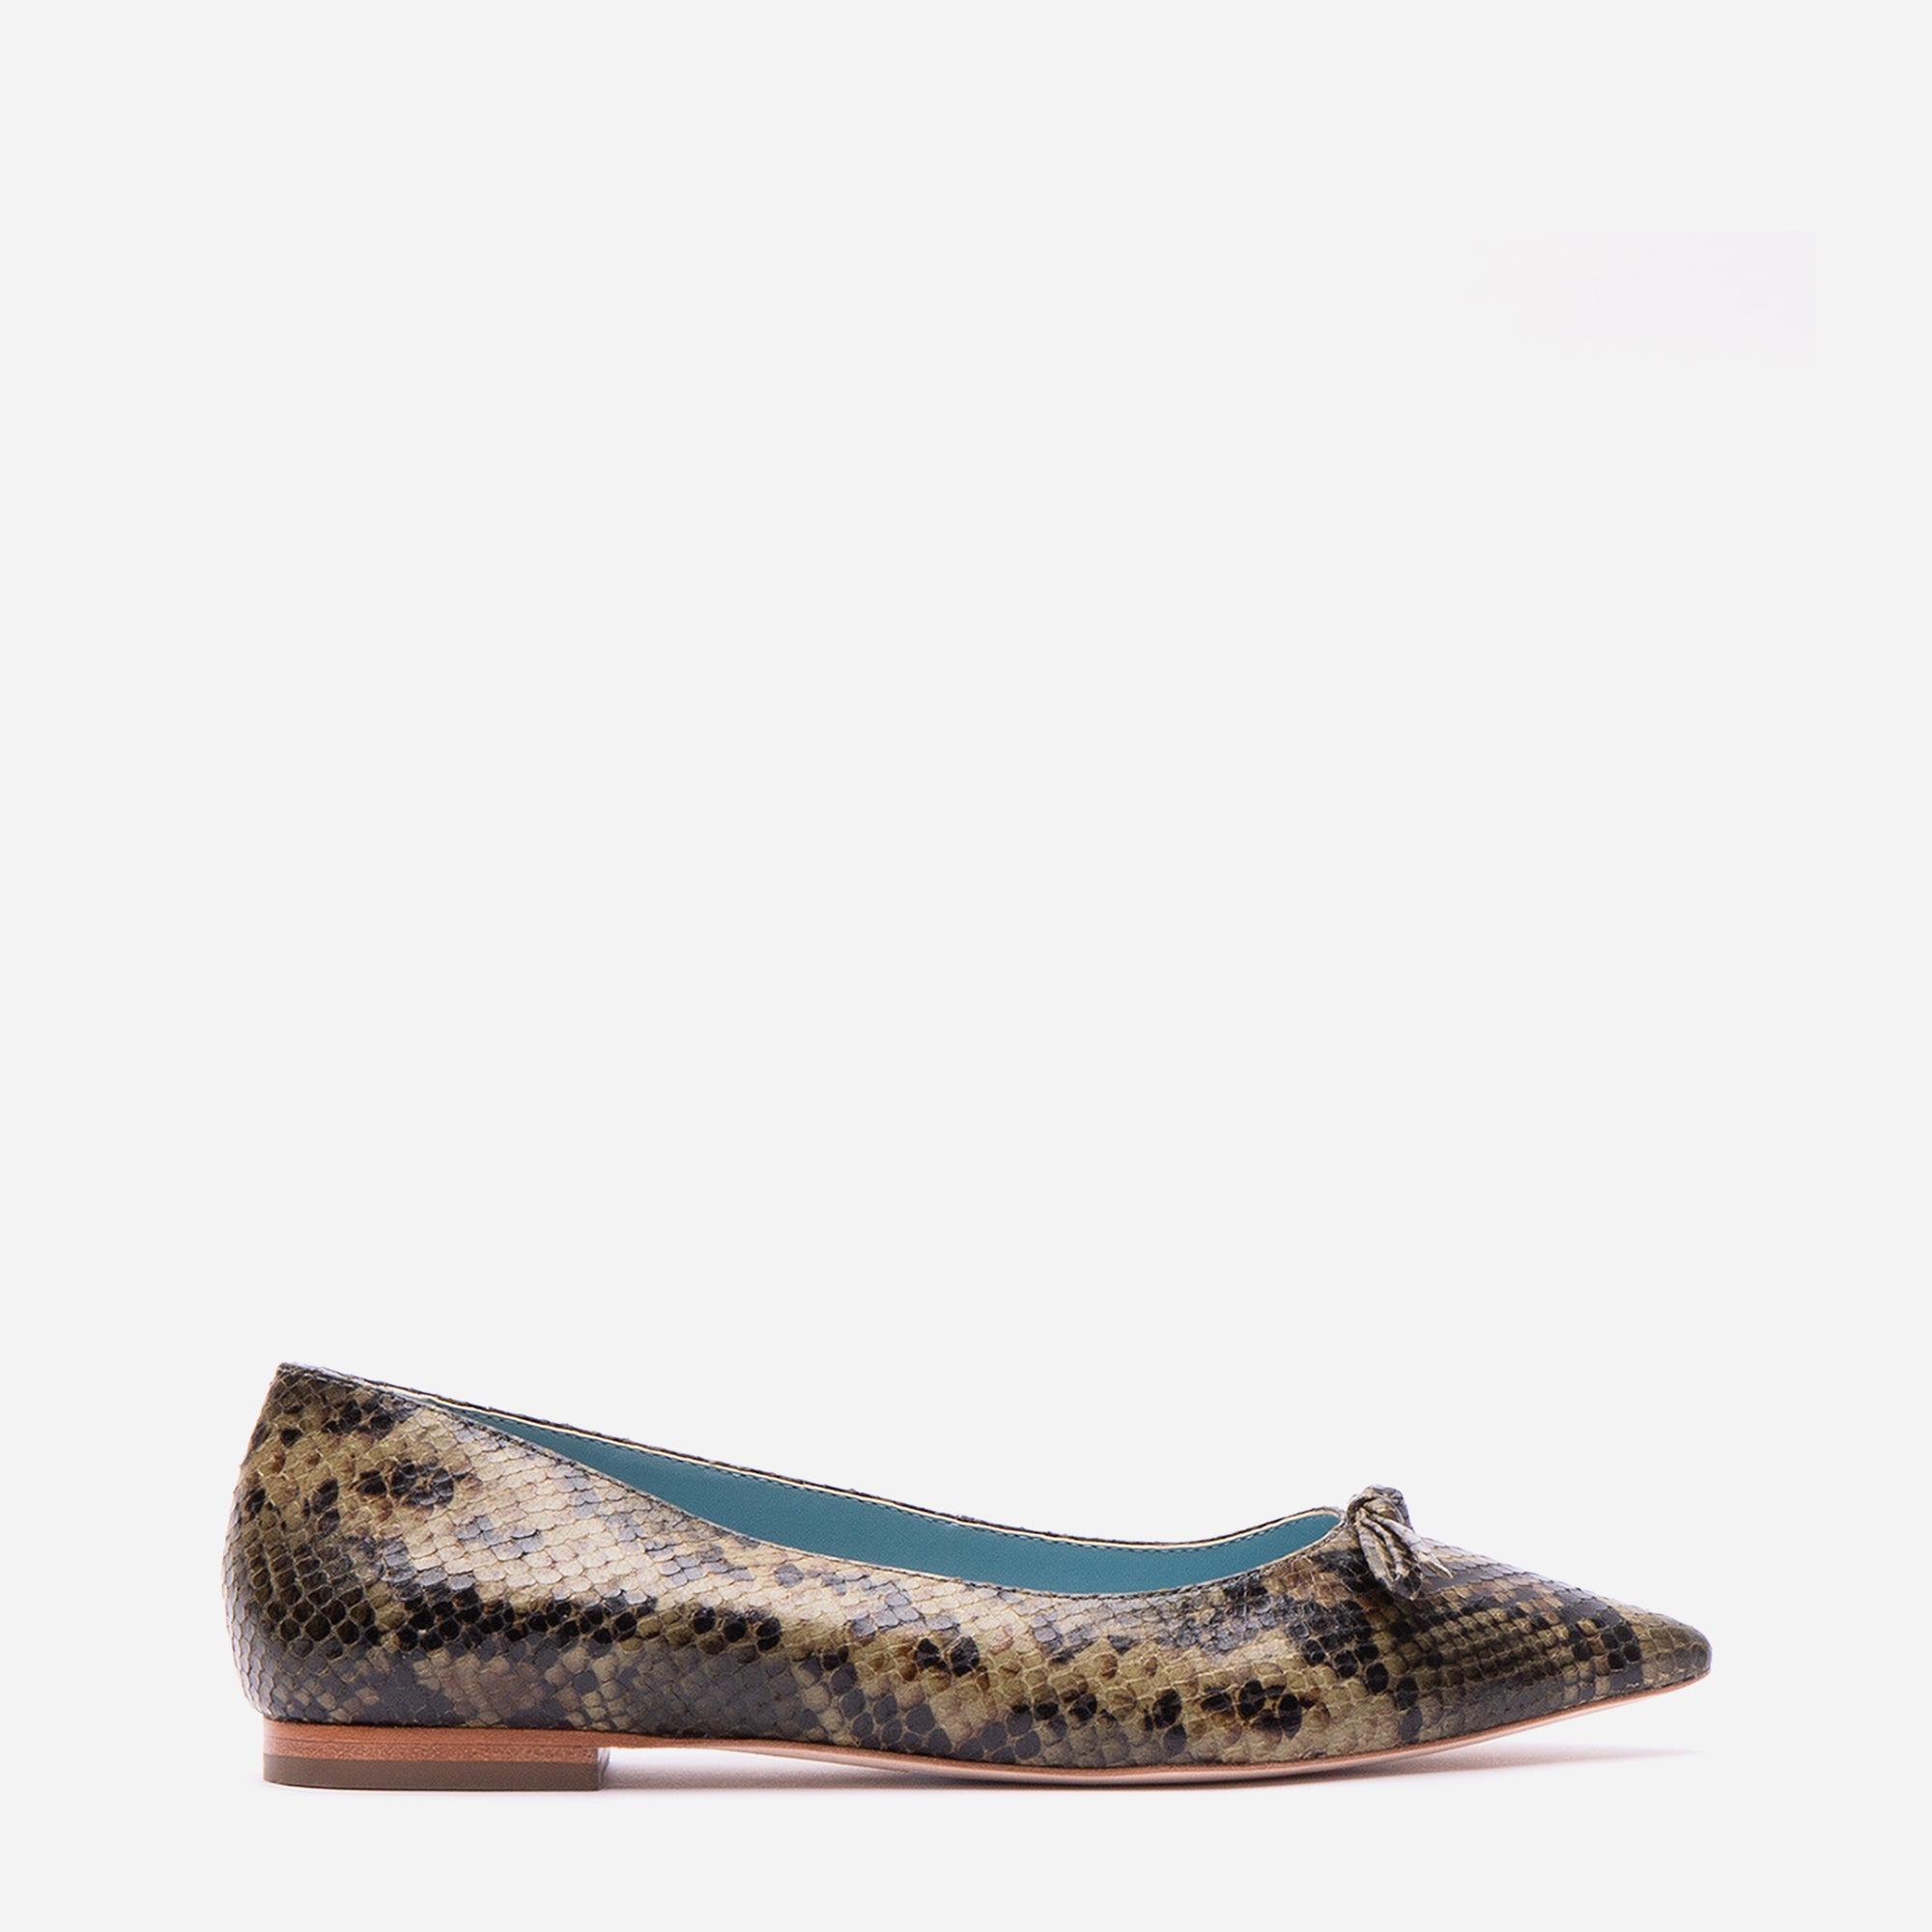 Paige Bow Flats Printed Snake Olive